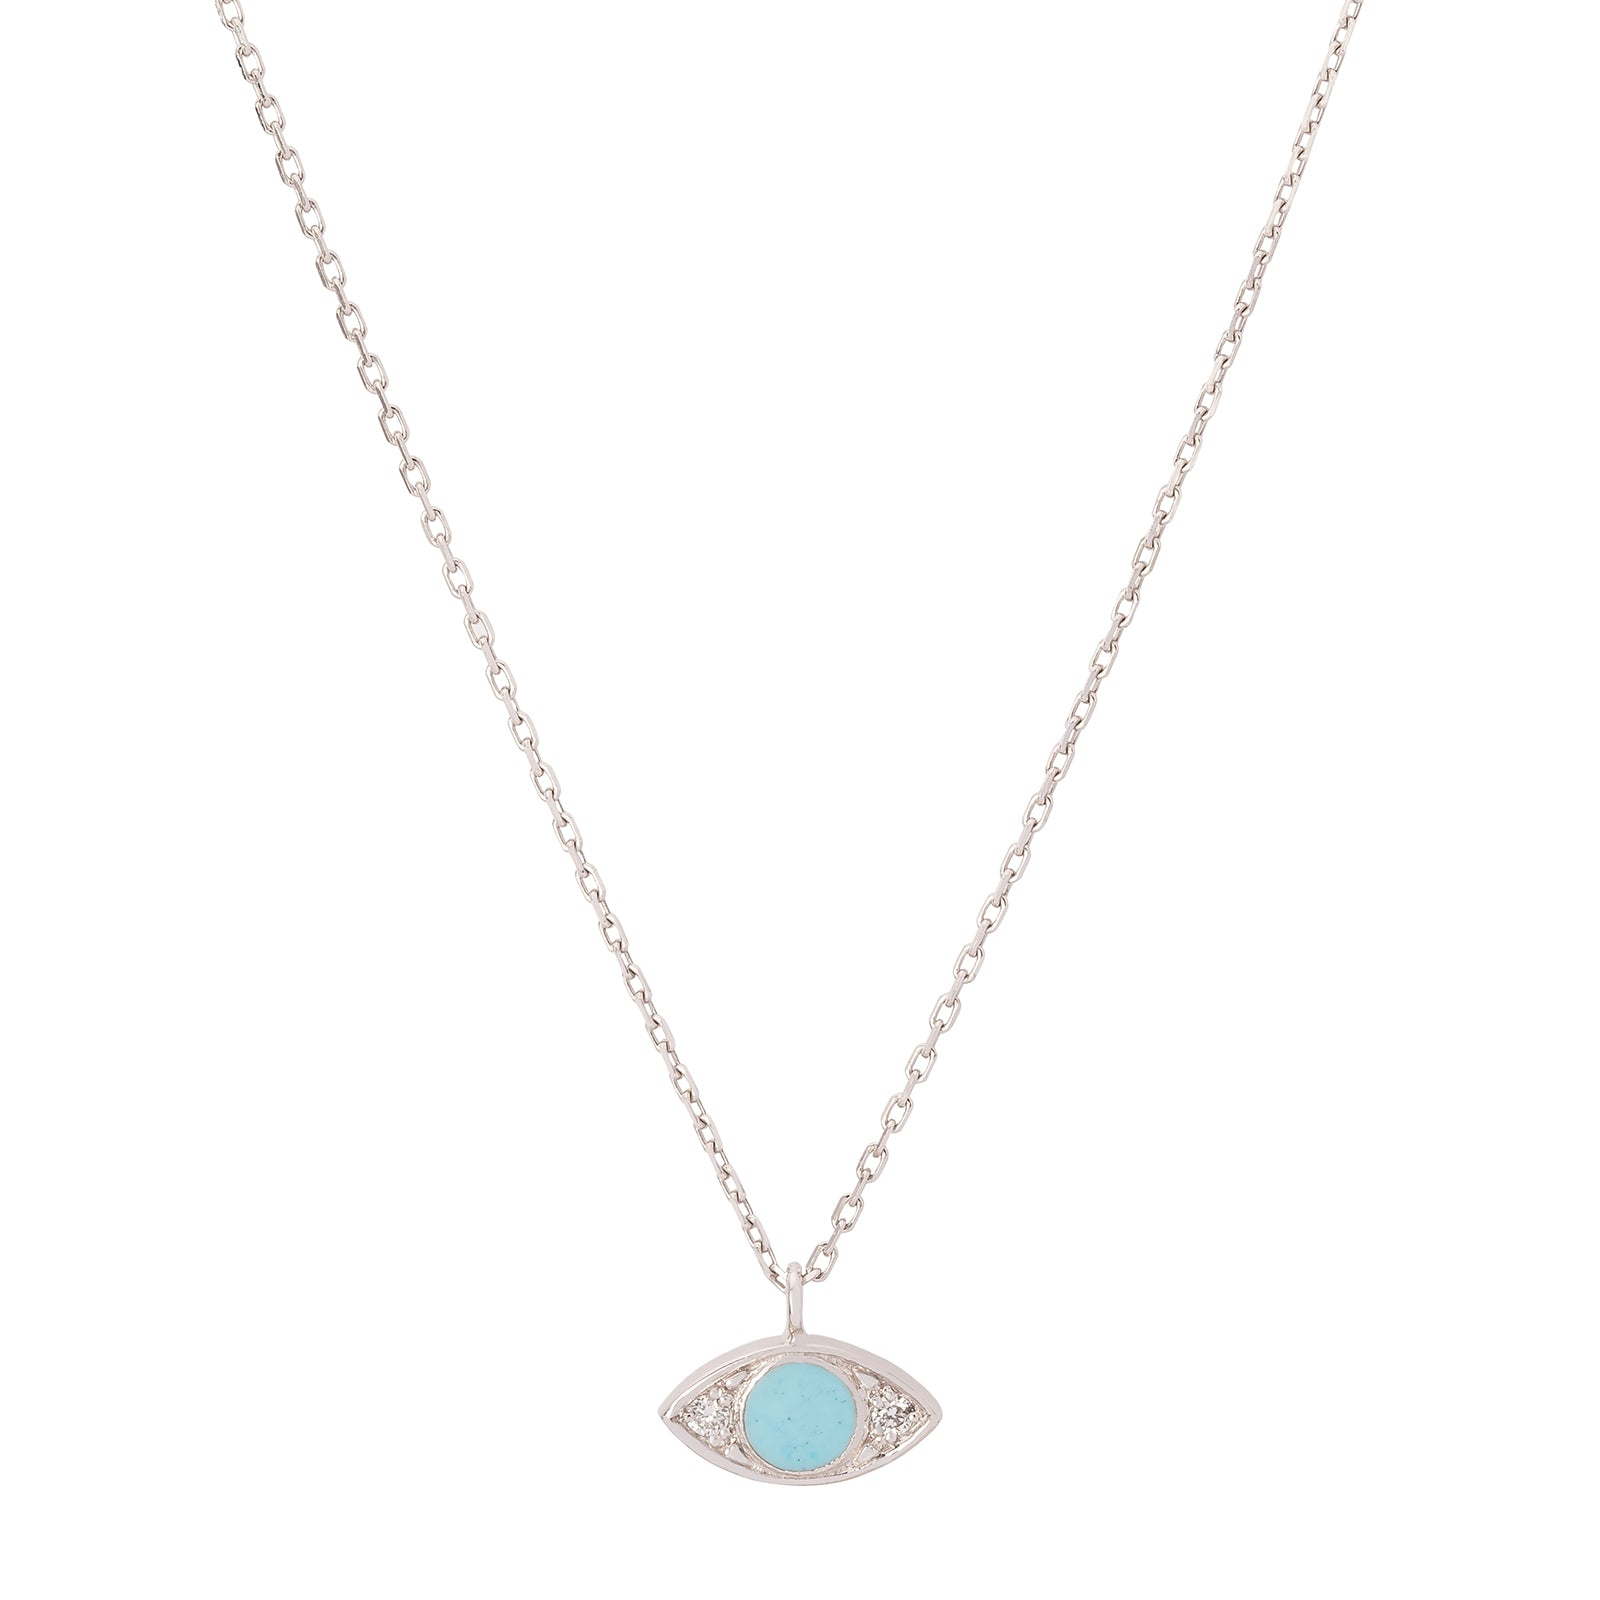 Gigi Clozeau Eye Diamond Necklace - Turquoise - Necklaces - Broken English Jewelry